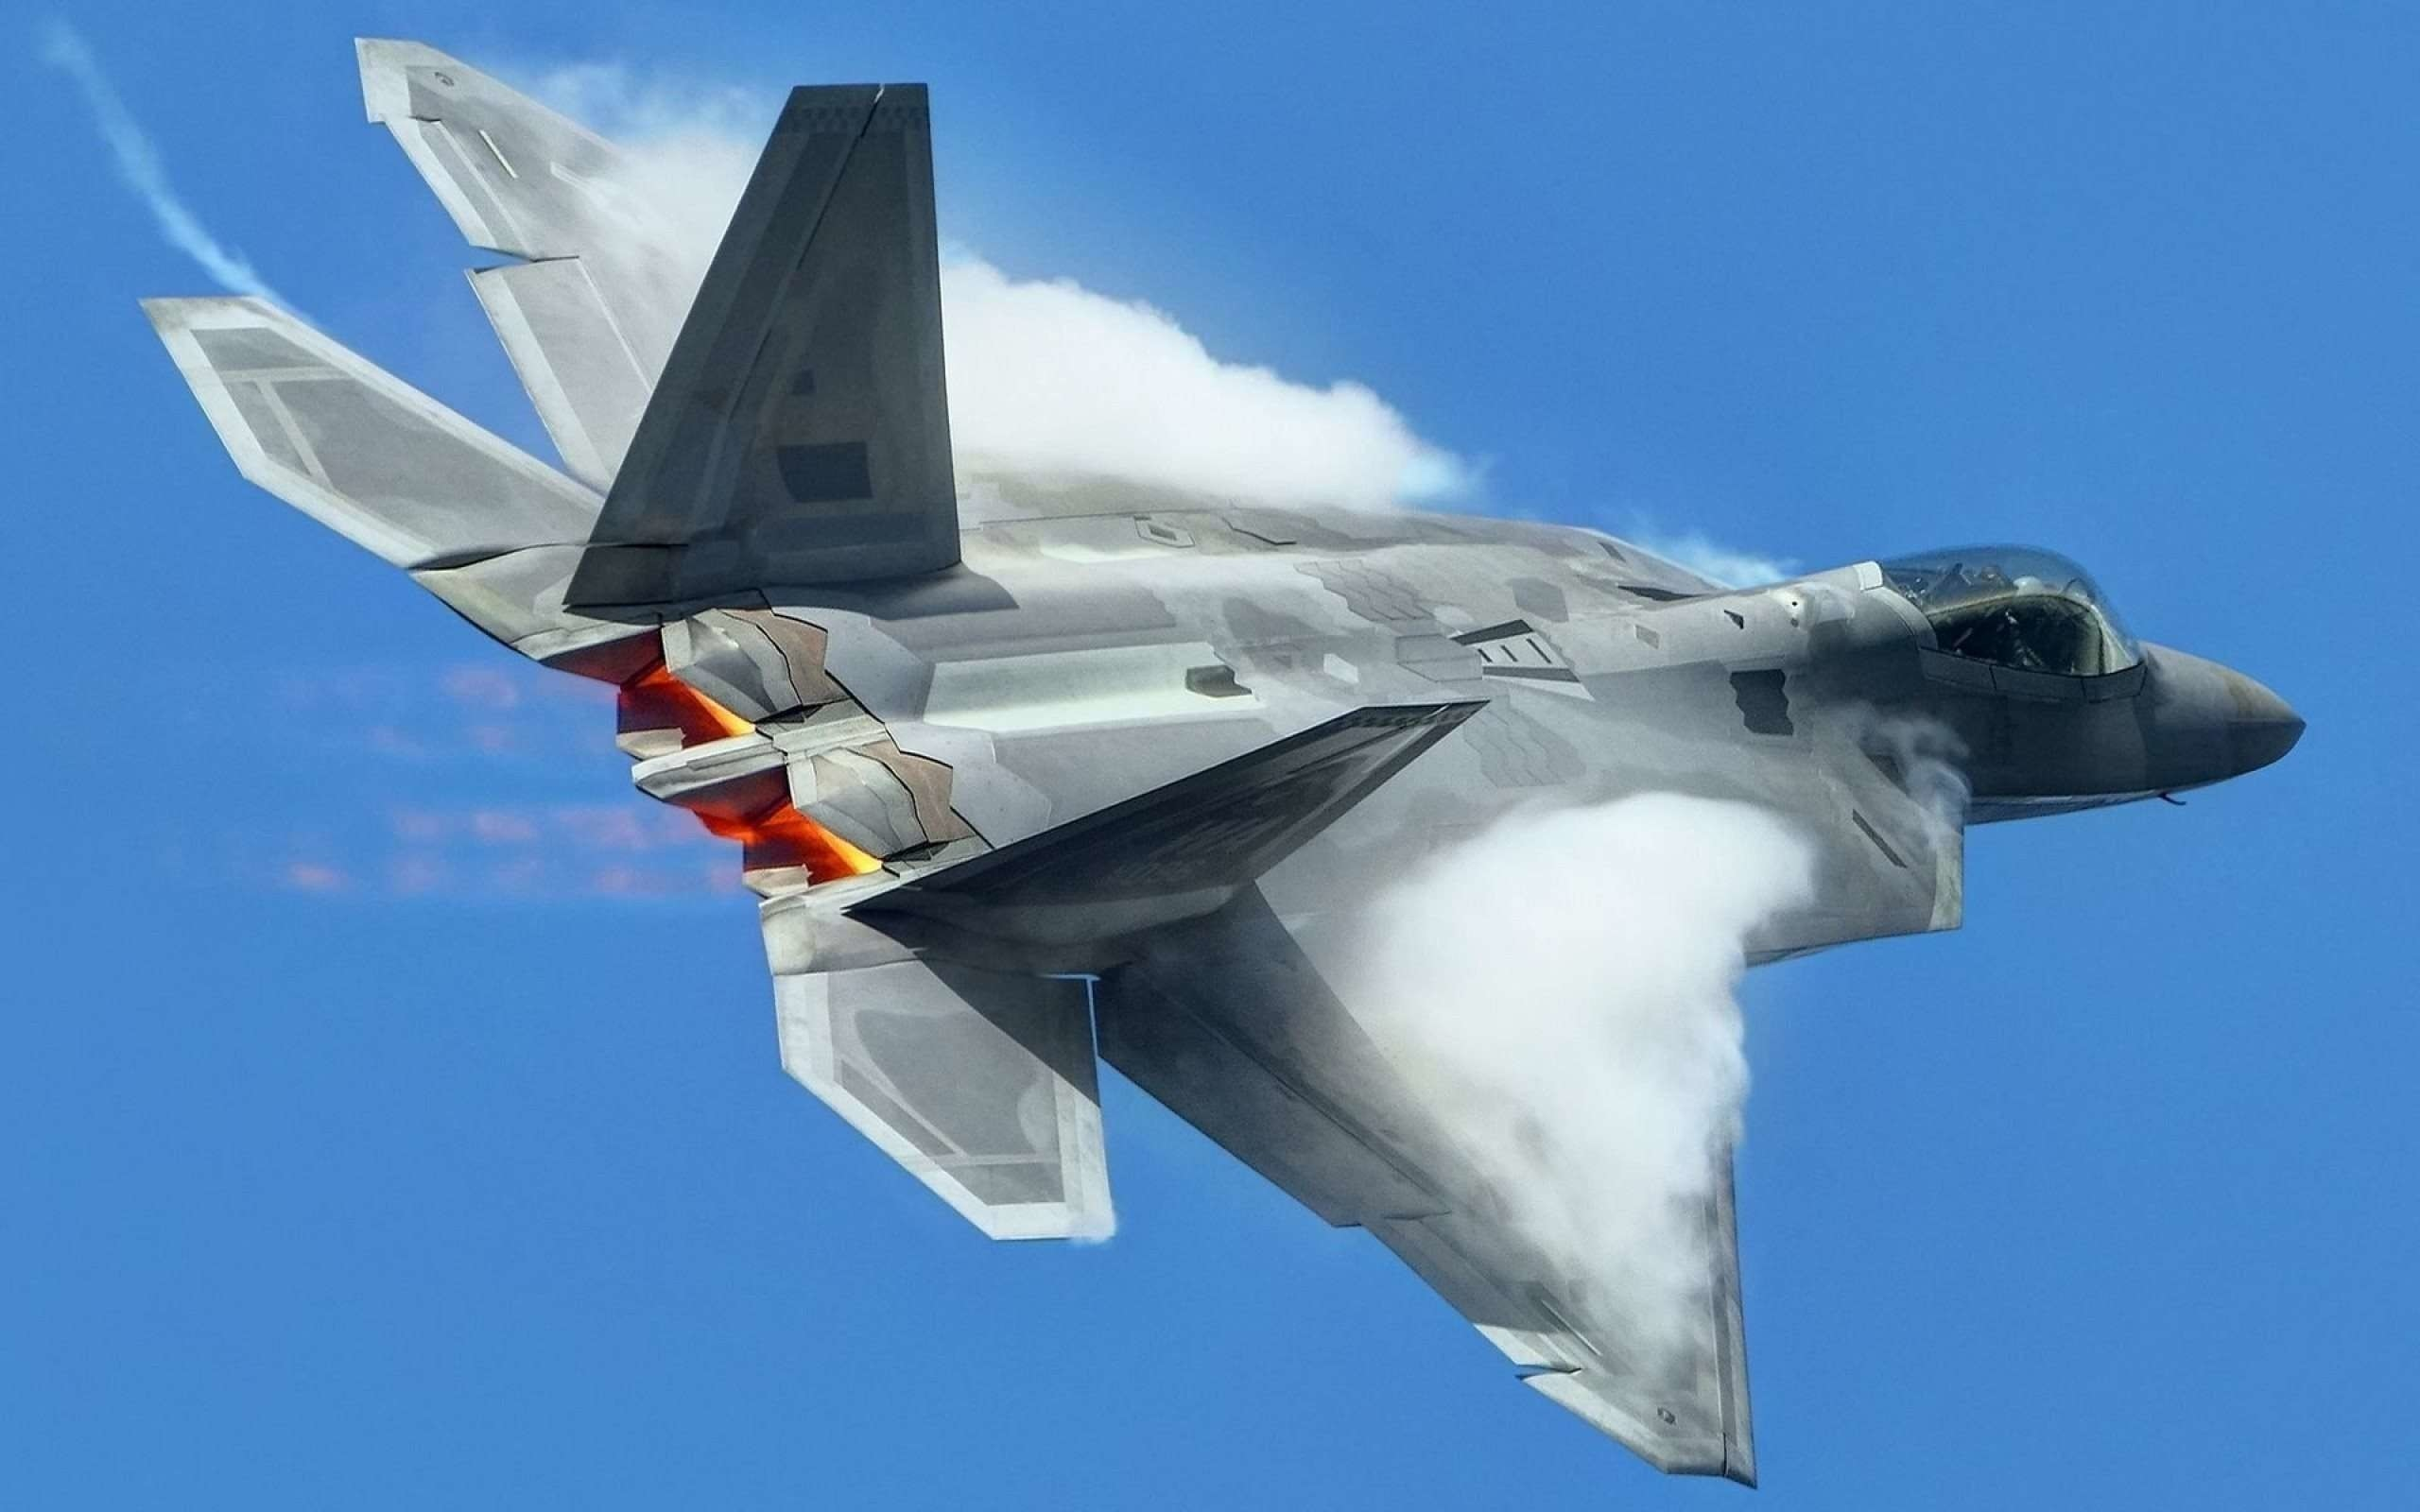 2560x1600 smoke from the back of a flying high Lockheed Martin F-22 Raptor